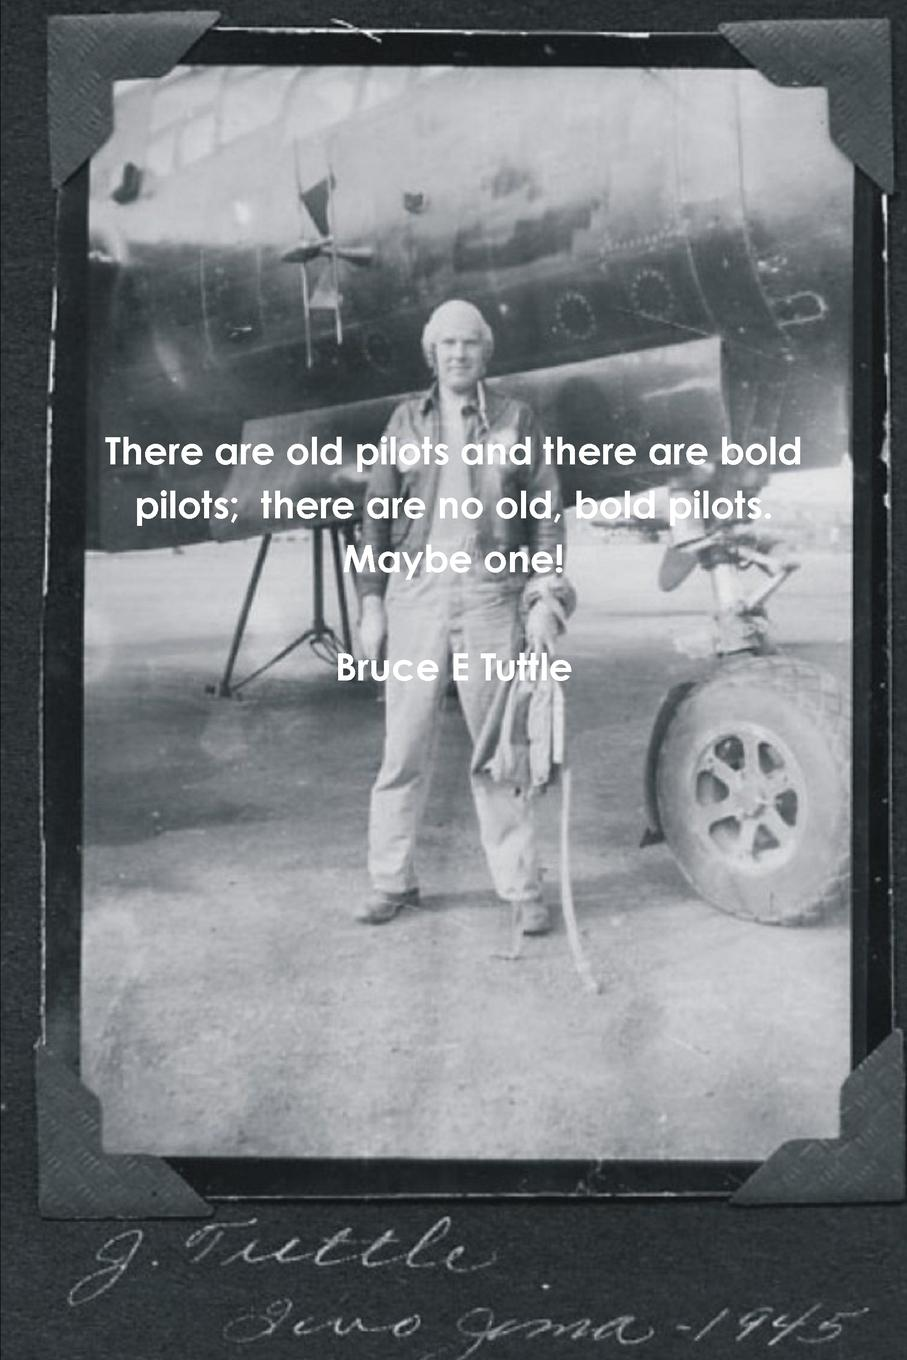 Bruce E Tuttle There are old pilots and there bold pilots; no old, pilots. Maybe one.